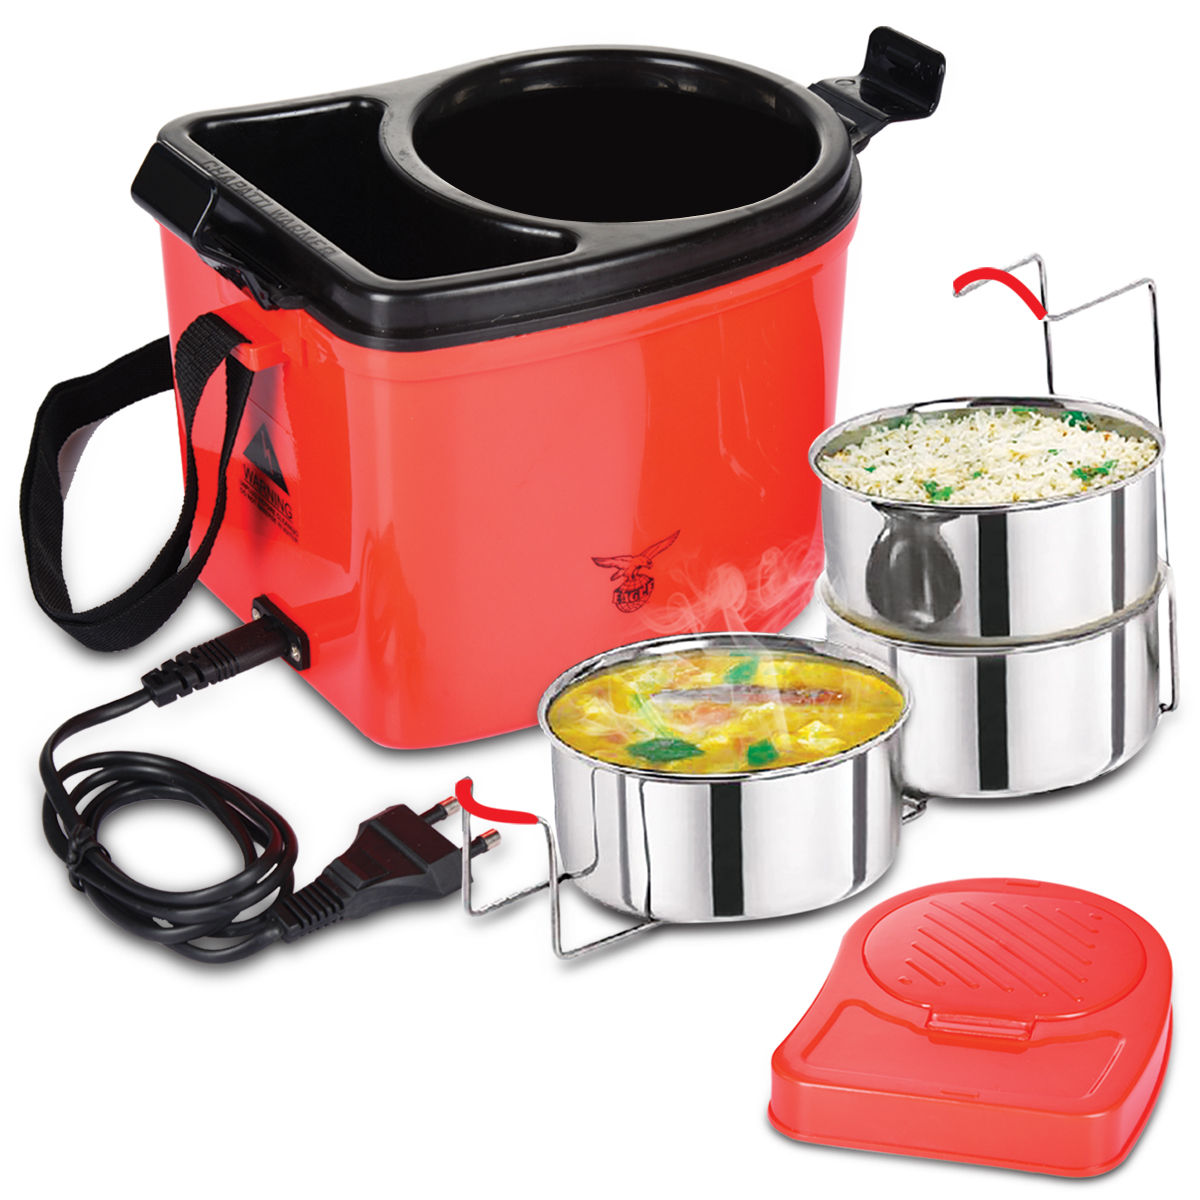 4fb20959eff Buy Electric Lunch Box - New Online at Best Price in India on Naaptol.com